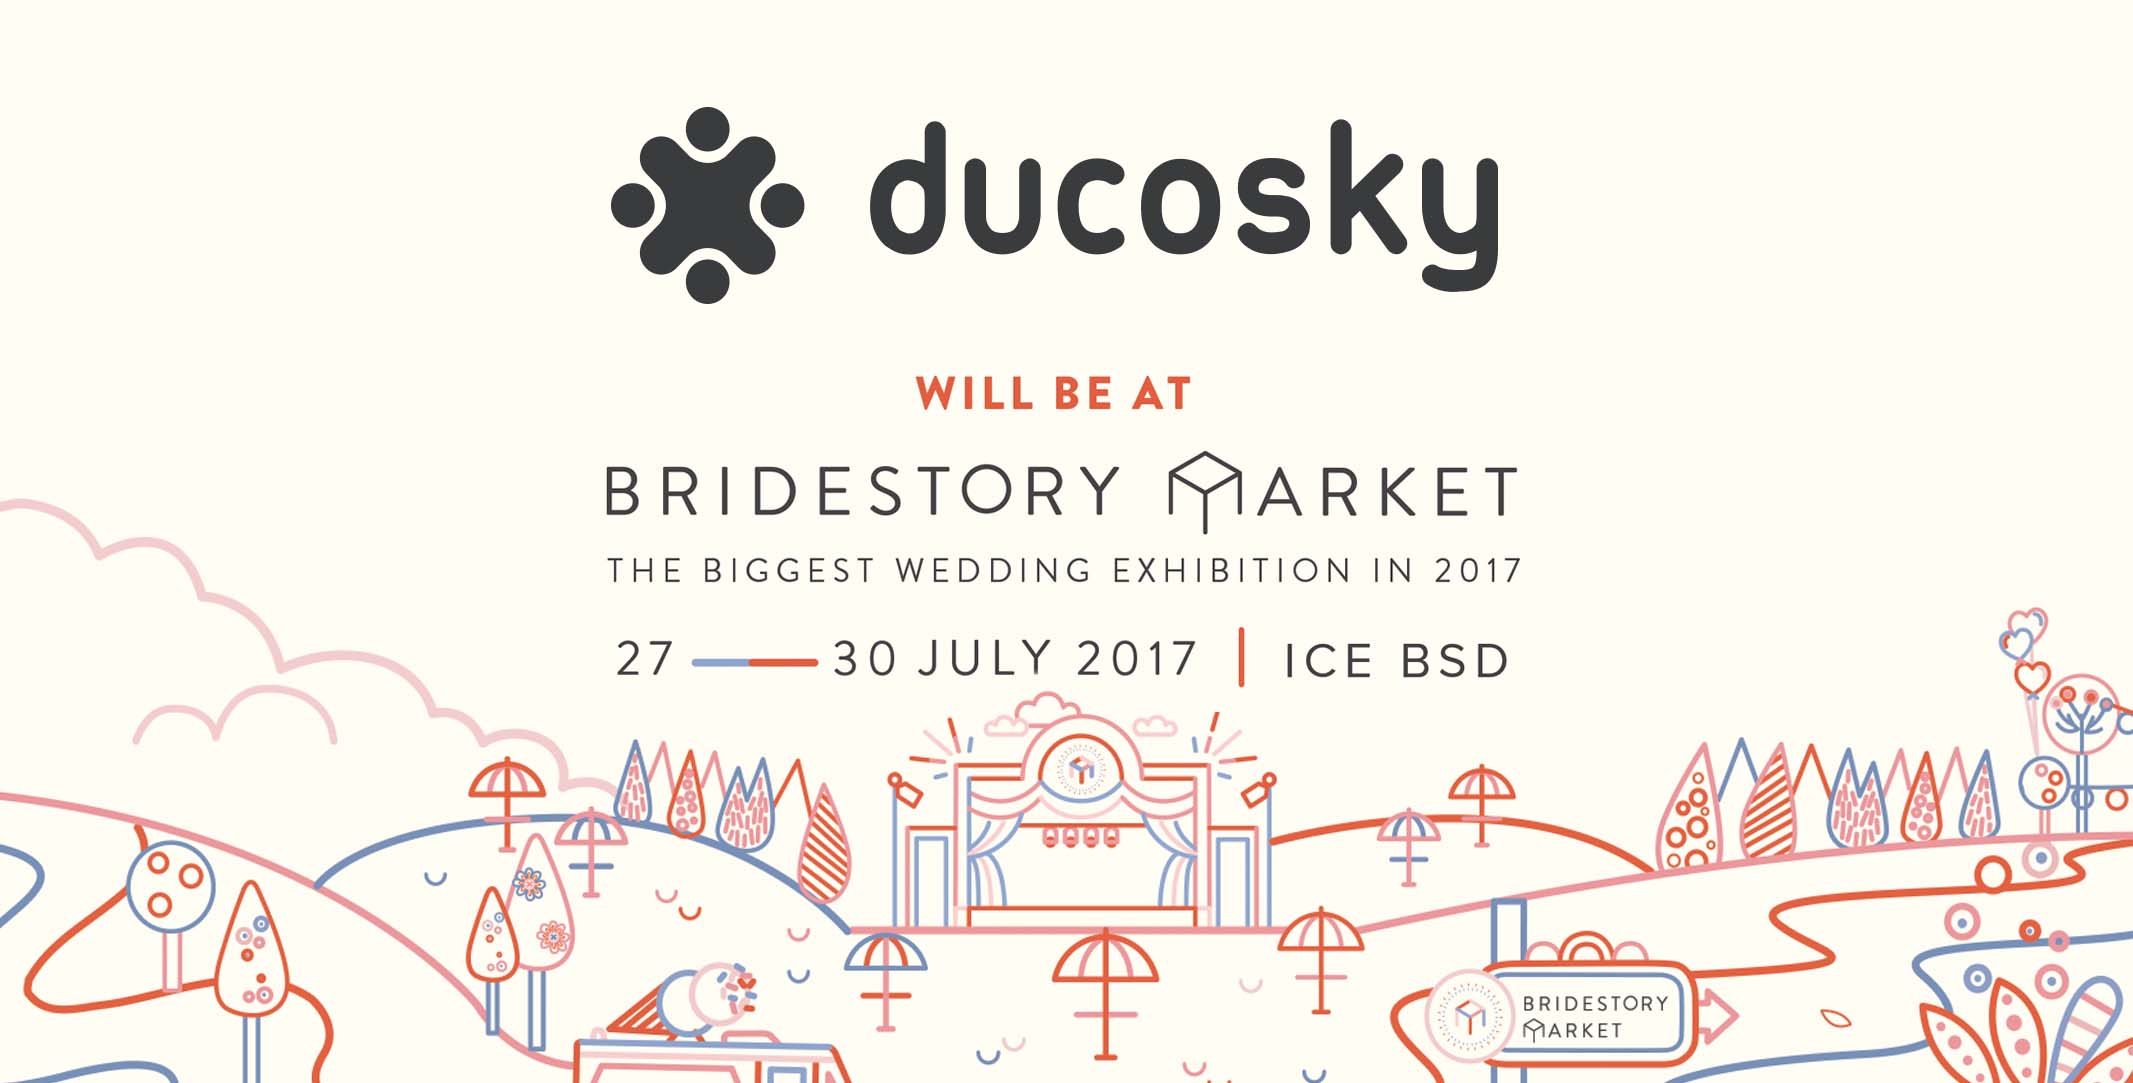 Ducosky at Bridestory Market: The Biggest Wedding Exhibition in 2017